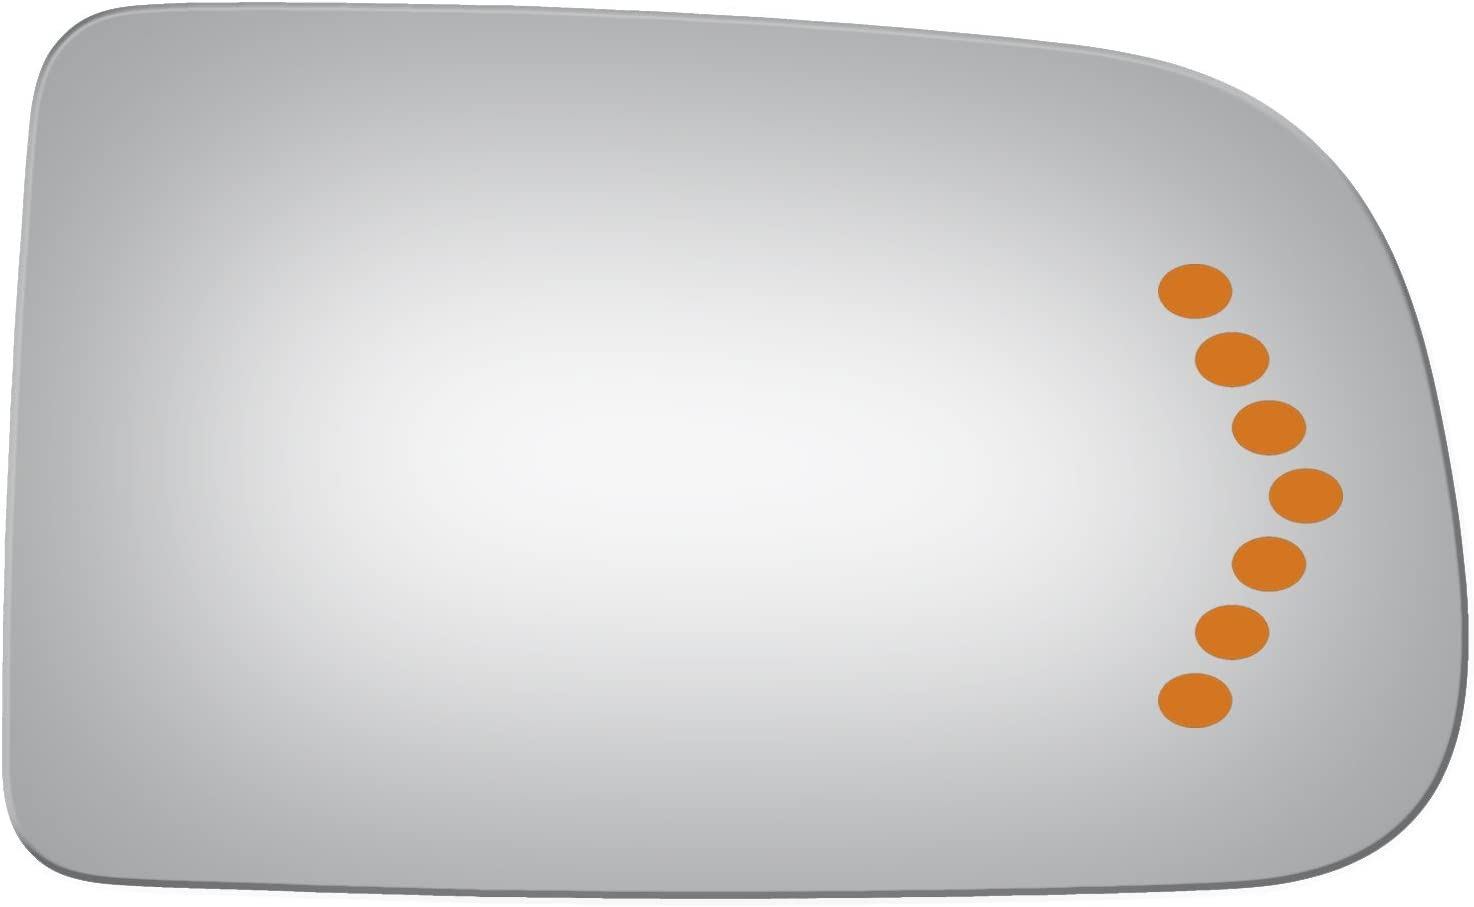 03-05 Chevy Avalanche 2500 2003-2005 Chevy Silverado 03-05 Chevy Avalanche 1500 03-04 GMC Sierra 2500 Burco 4001S Flat Driver Side Replacement Mirror Glass for 03-04 Chevy Silverado 2500